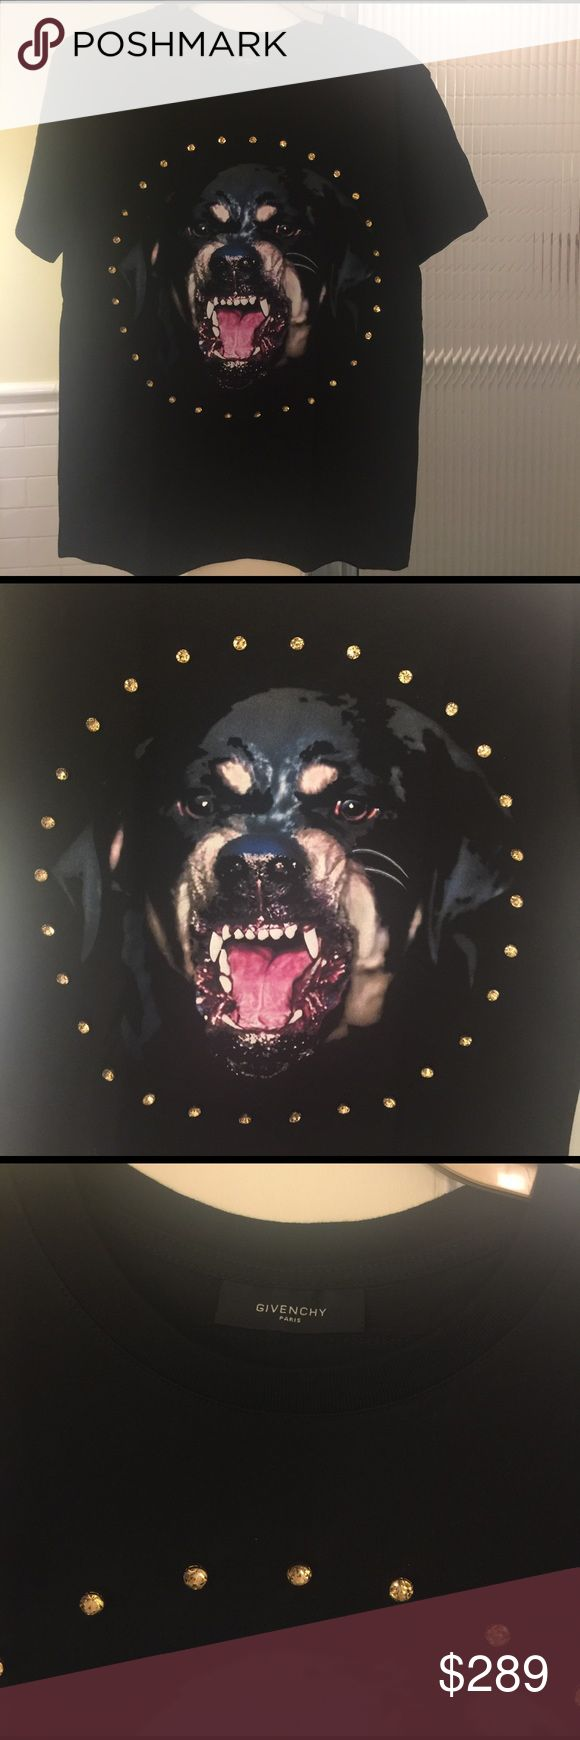 Givenchy Rottweiler rare tee. Worn twice. In great condition. No stone is missing. 100% cotton. Made in Paris. Machine washable/delicate. This particular design was not produced huge quantities. Department stores still carry Rottweiler collection pieces so you can compare the price. I would say this would look great on size small and medium. Thank you Givenchy Tops Tees - Short Sleeve